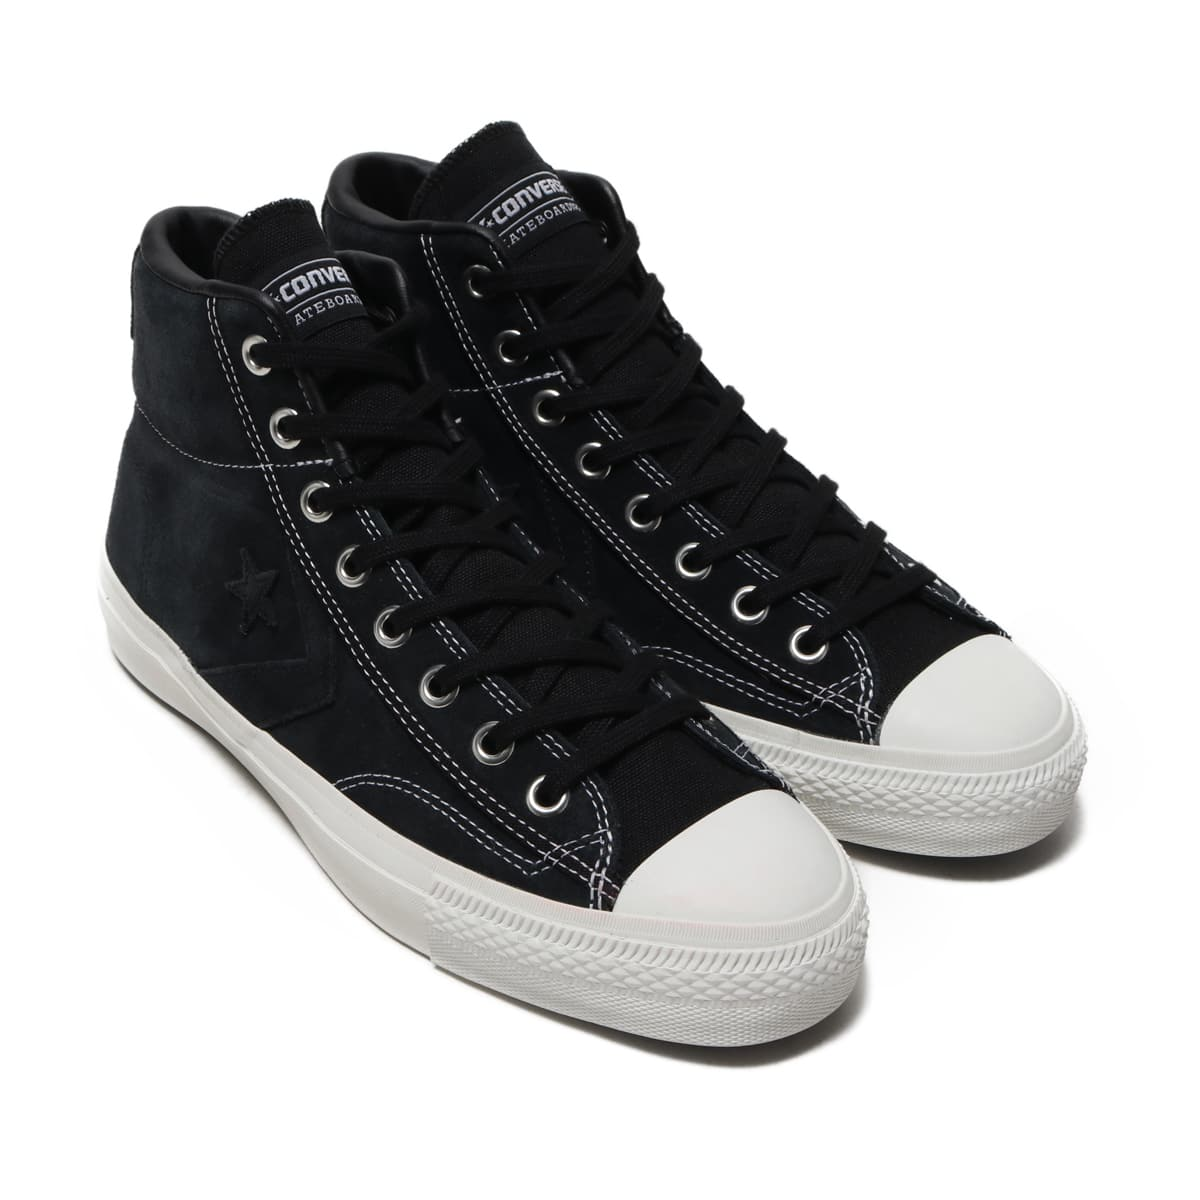 CONVERSE BREAKSTAR SK HI + ブラック 18FW-I_photo_large